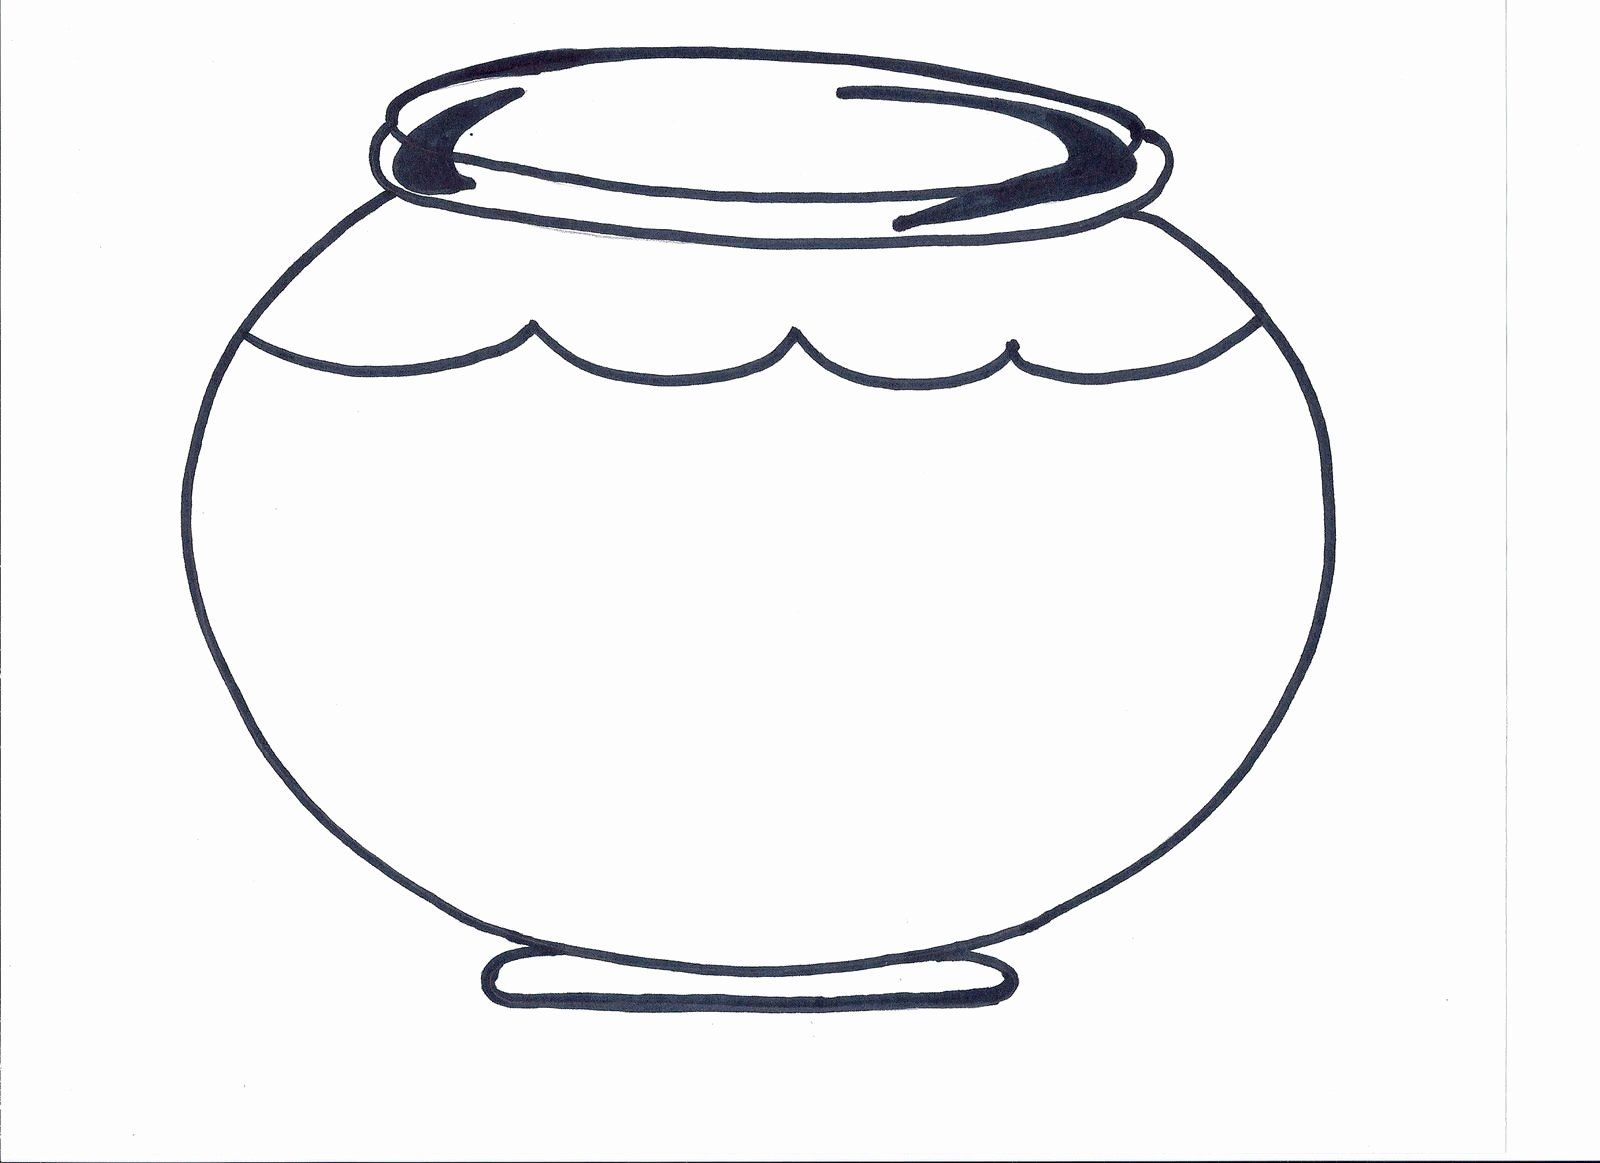 Fish Bowl Coloring Page Best Of Fish Bowl Coloring Page Printable Coloring Home Frozen Coloring Pages Bee Coloring Pages Fish Coloring Page